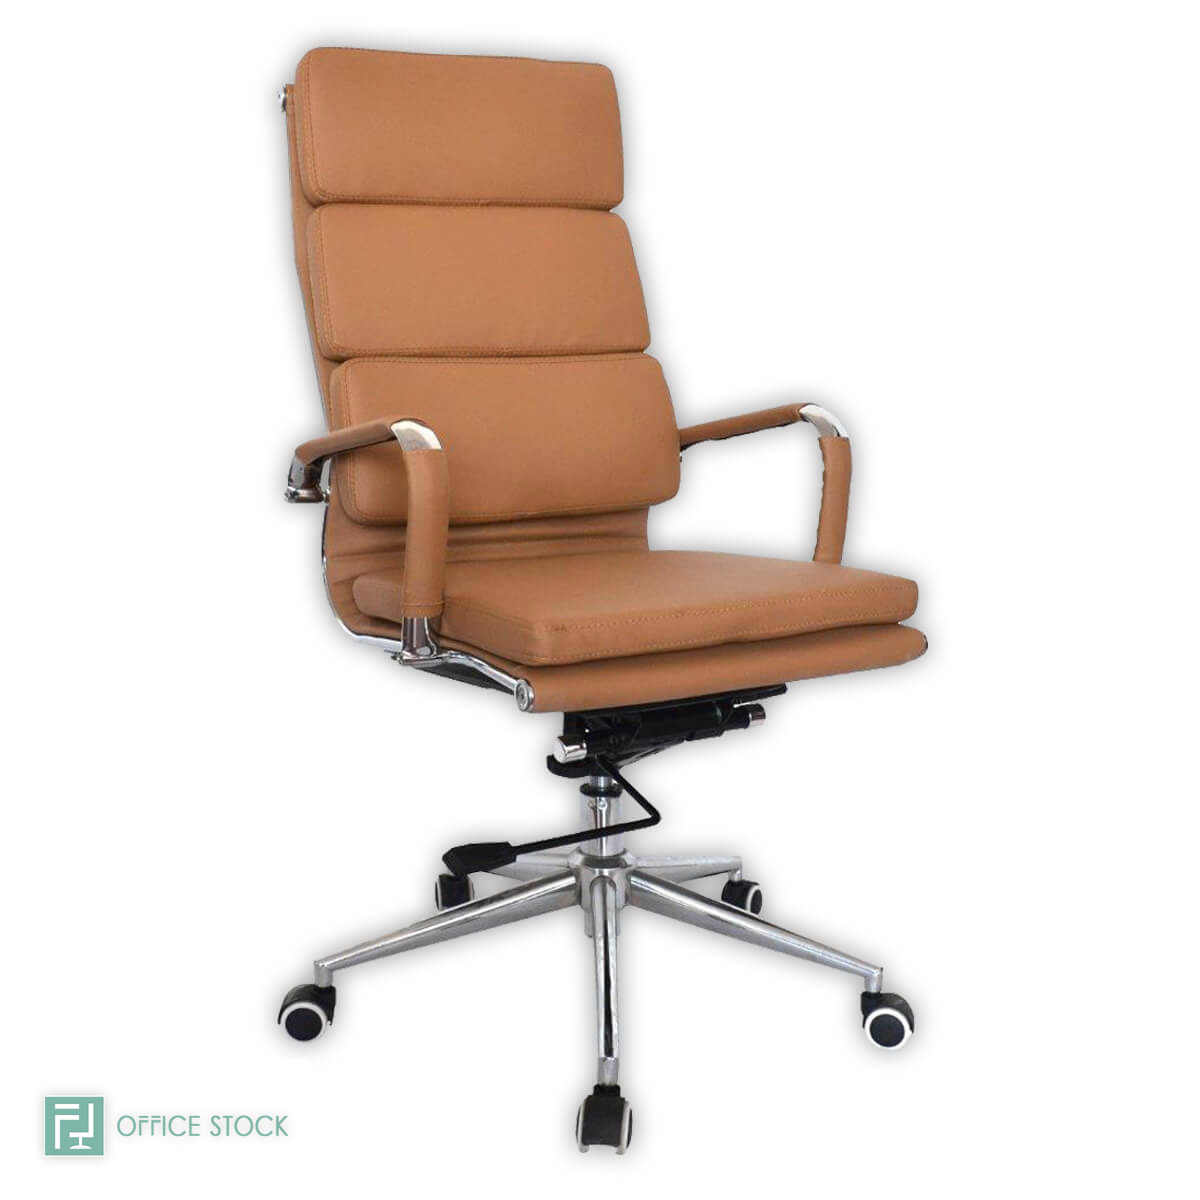 Classic Eames Cushion High Back Office Chairs | Office Stock